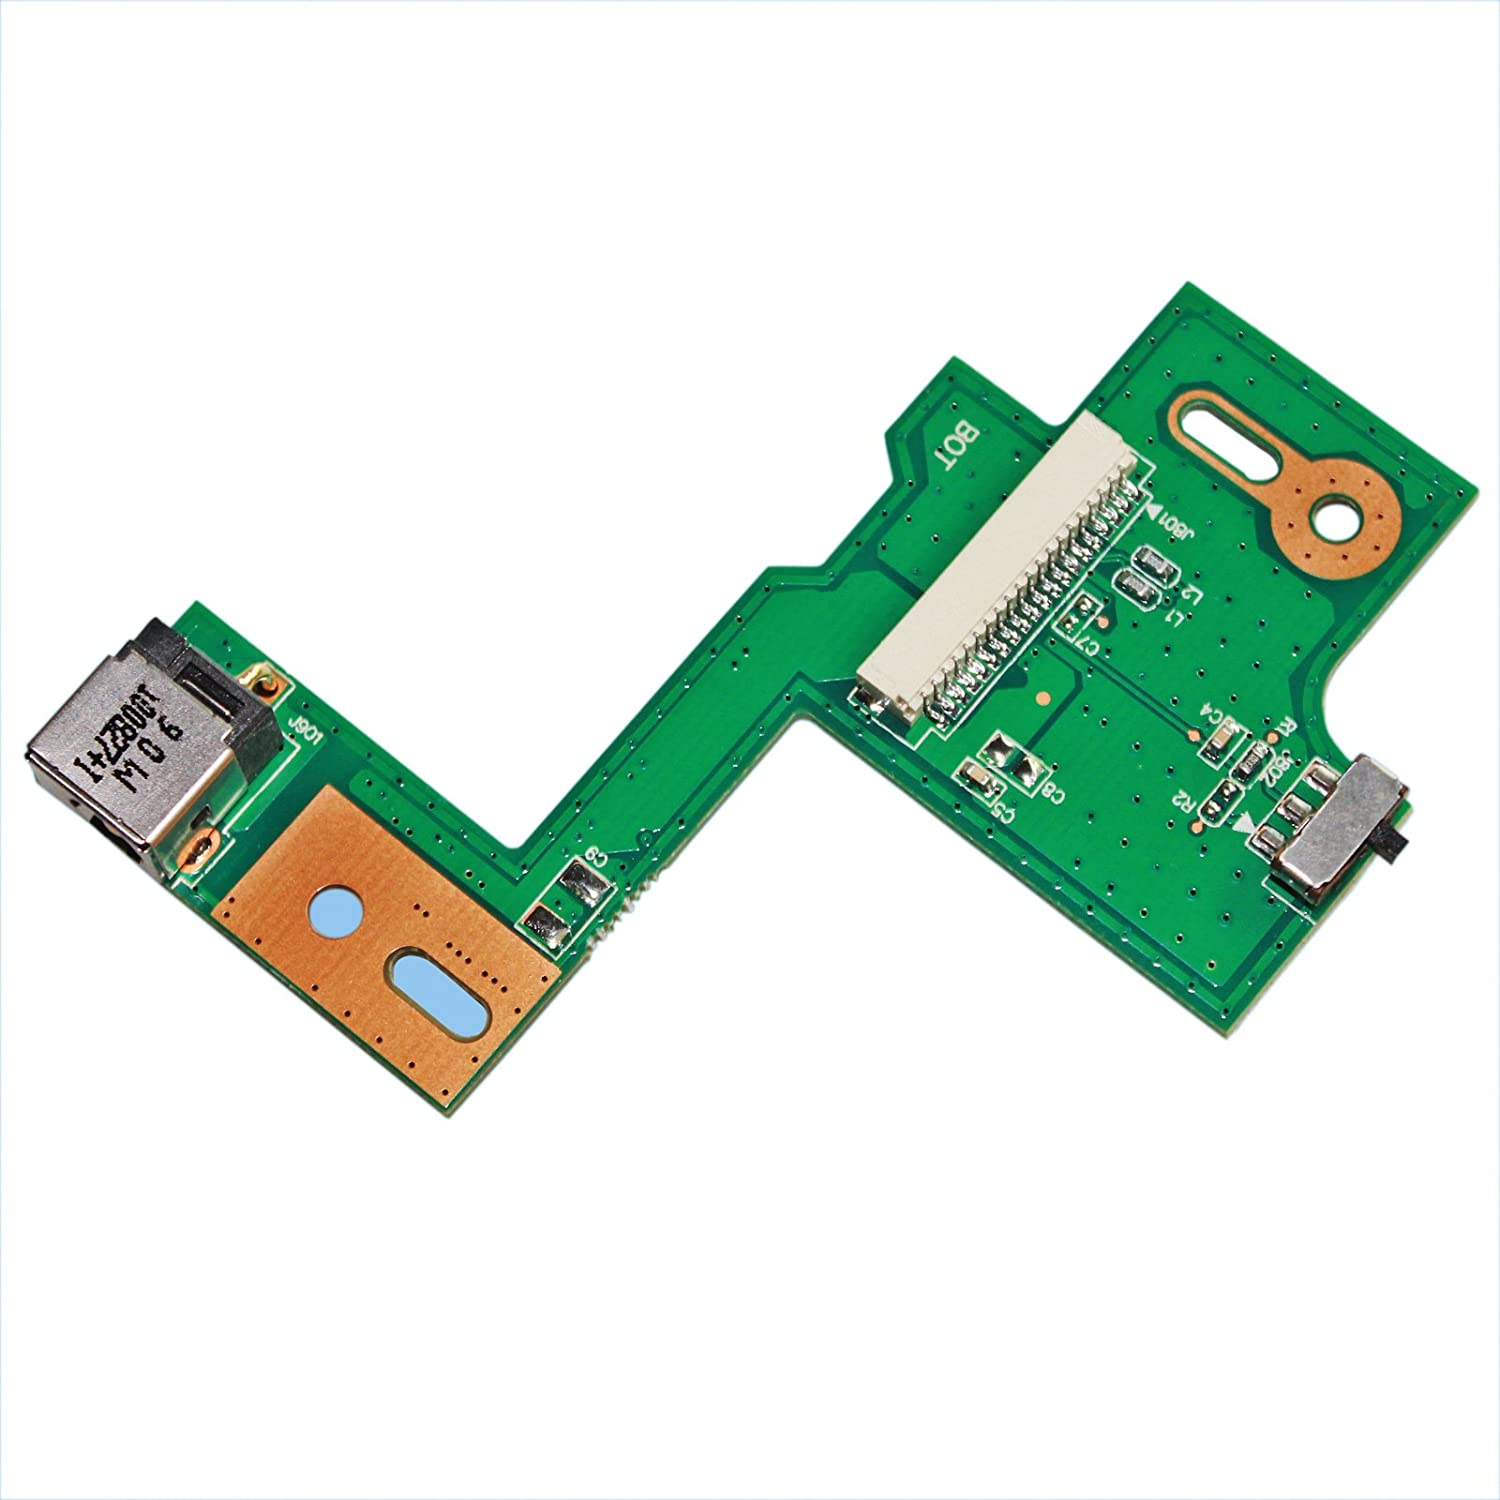 DC POWER JACK SWITCH BOARD Replacement FOR ASUS N53S N53SV N53SQ N53SI N53SL0 GinTai